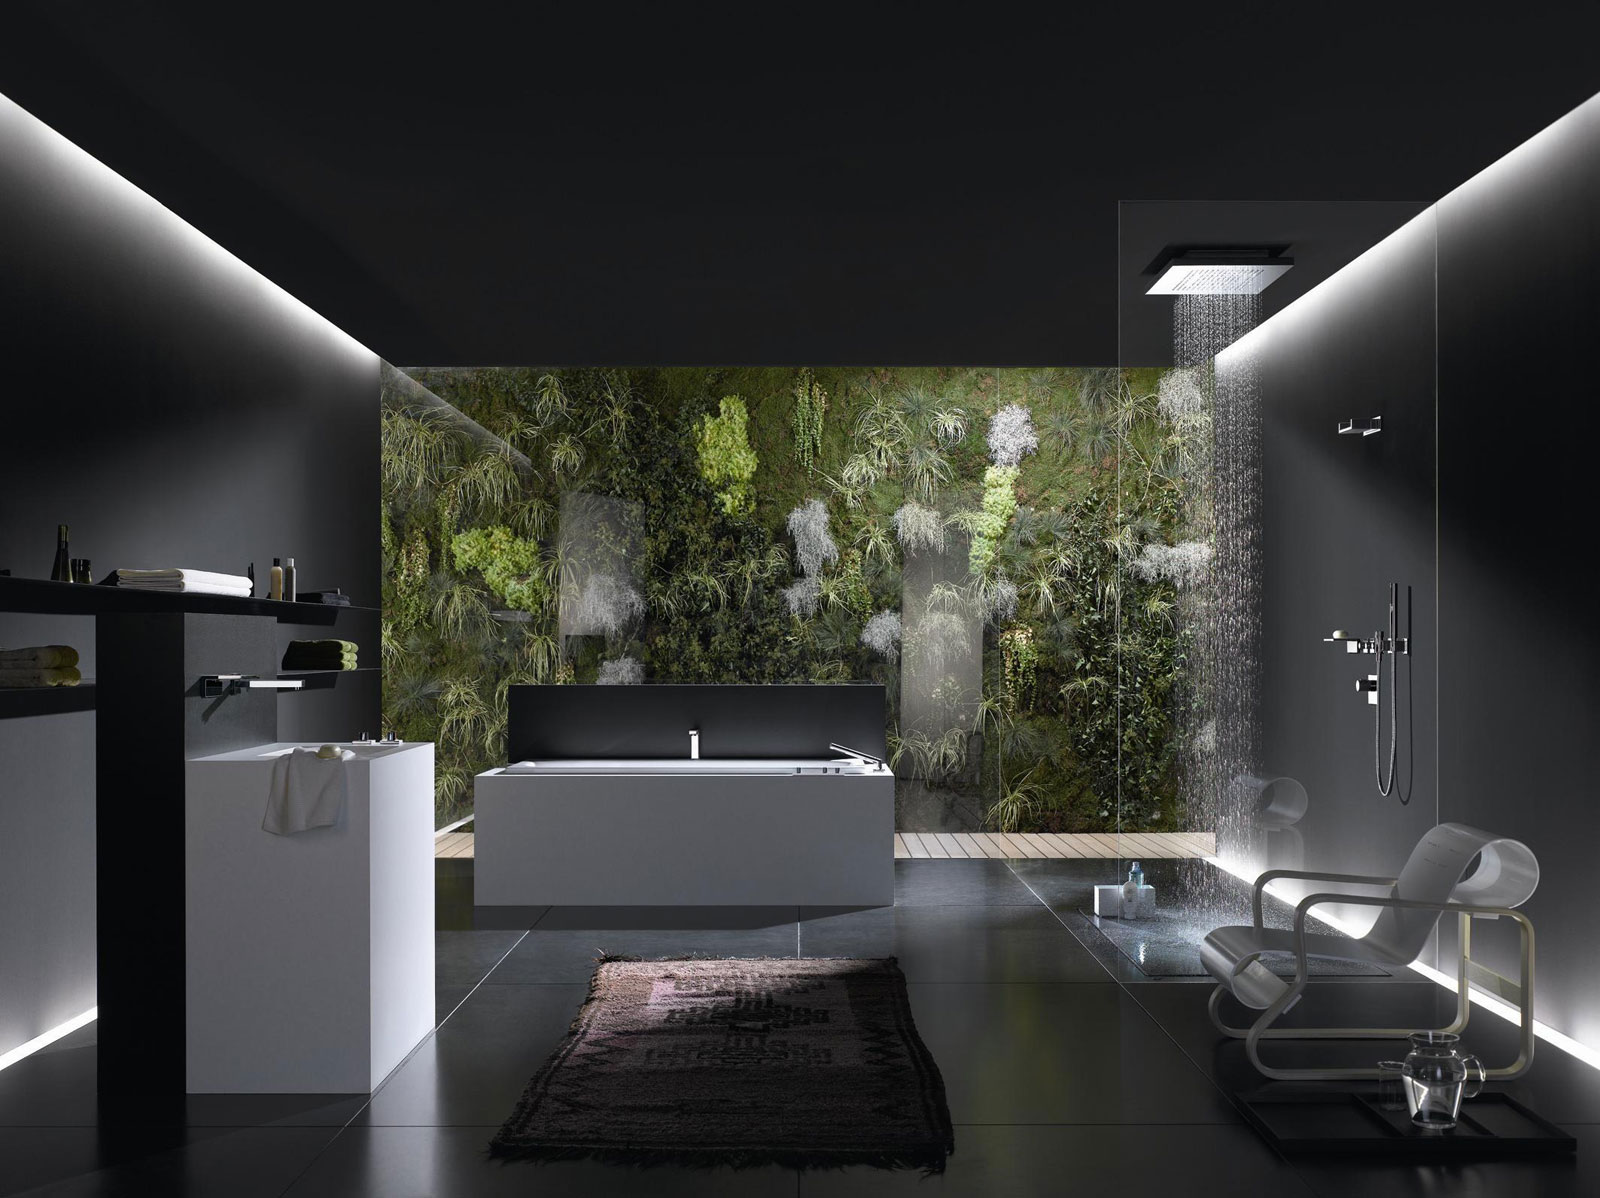 Dornbracht hyde park bathrooms and kitchens - Banos de lujo modernos ...